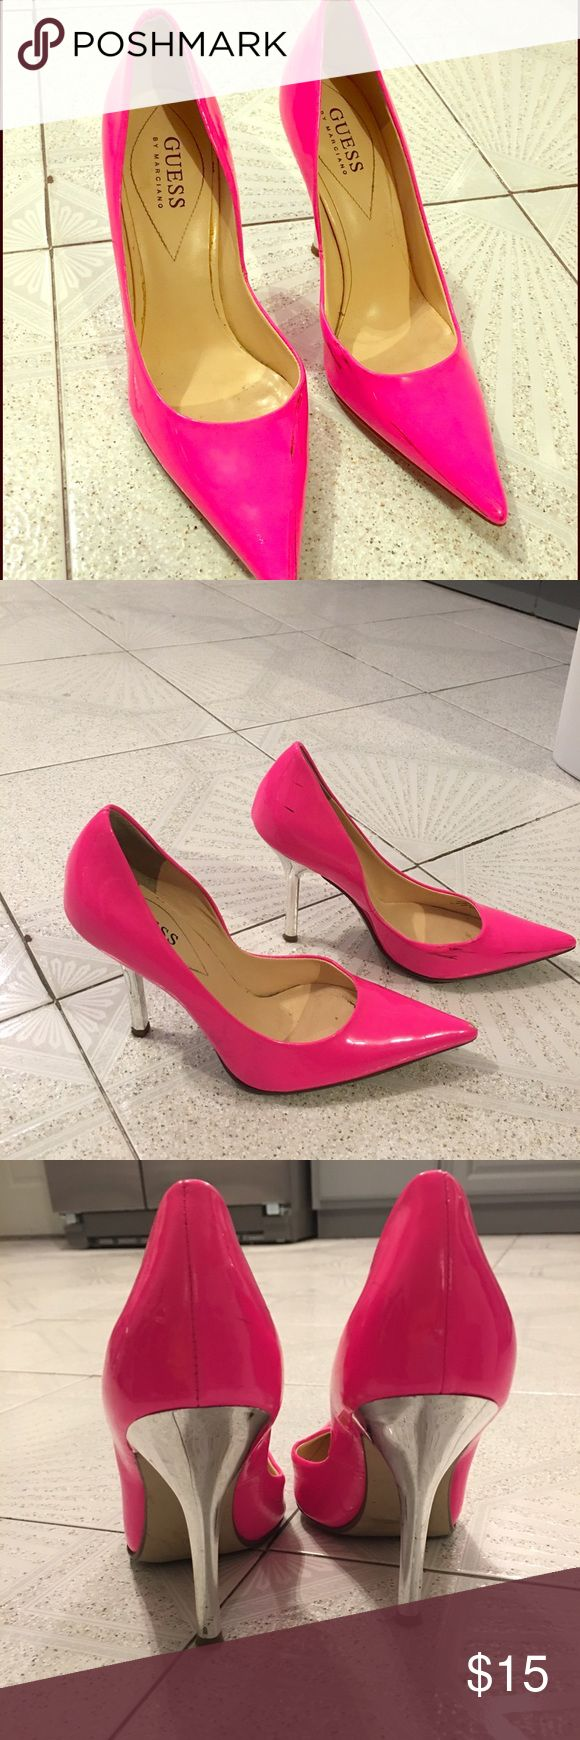 sale🔥Guess by Marciano hot pink pumps - worn once worn once! guess by Marciano hot pink Patent pumps size 6.5 - slightly scuffed Guess by Marciano Shoes Heels